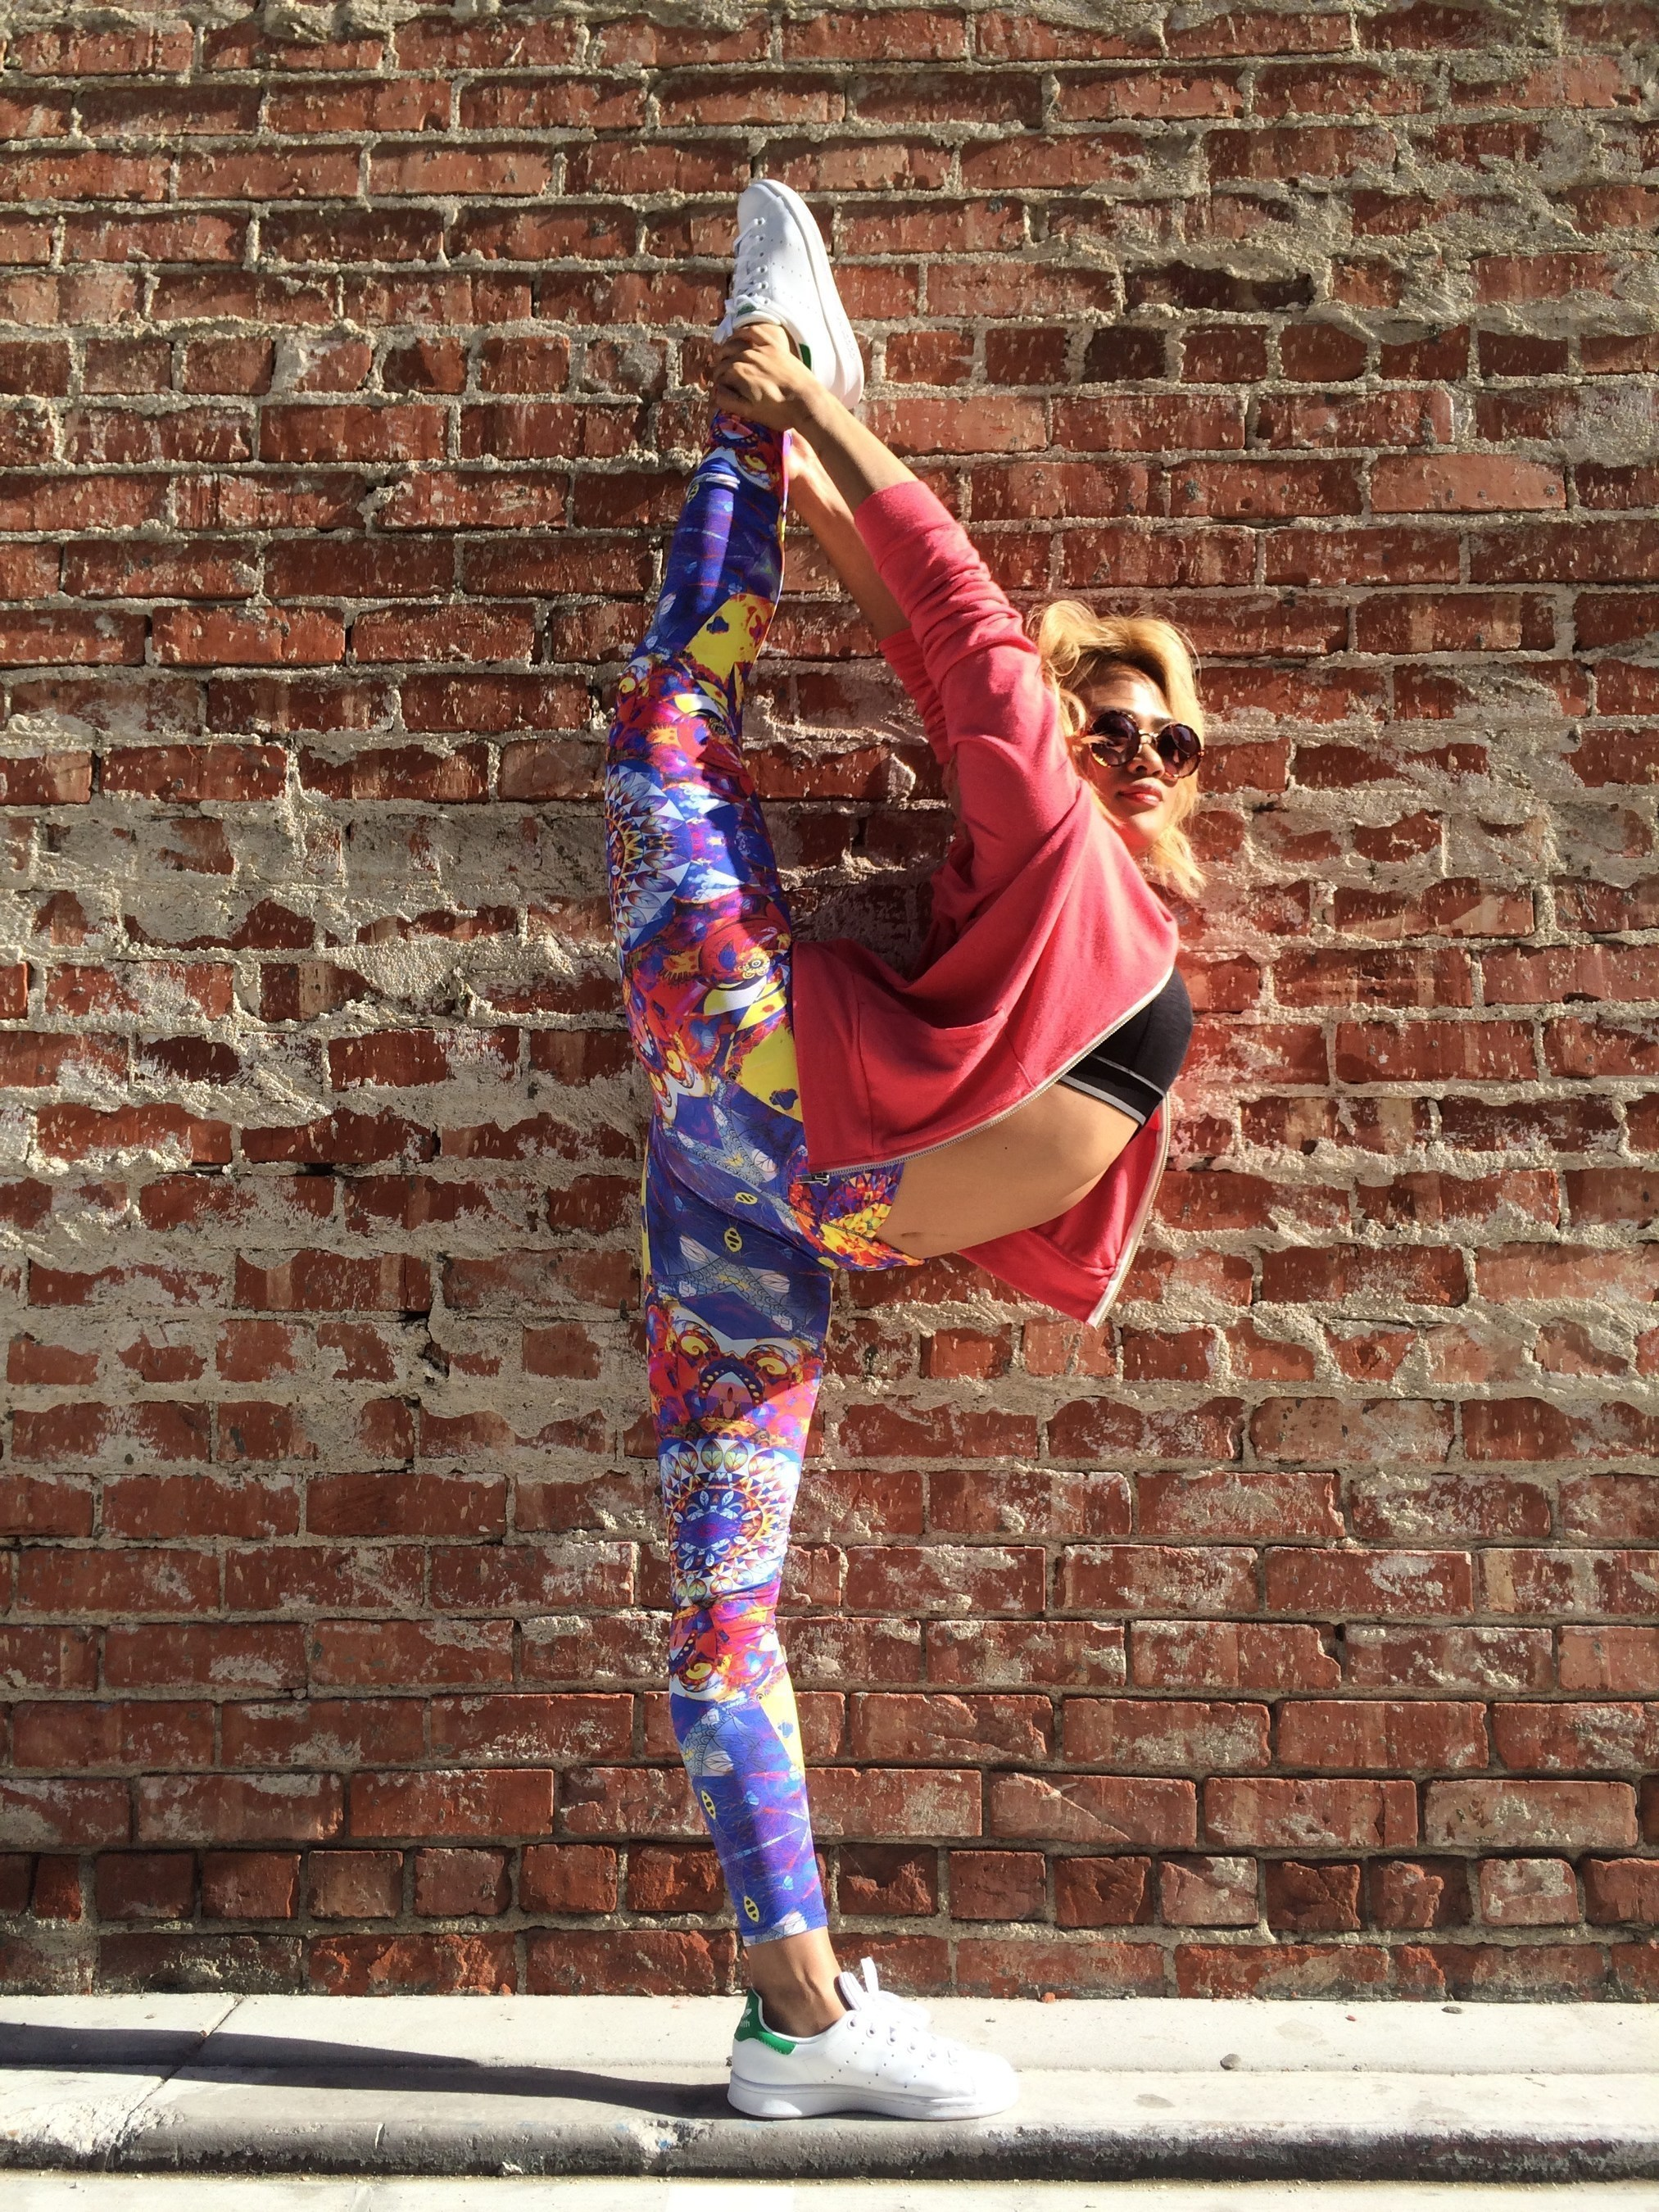 Veronica Lombo, a Bikram certified yoga instructor, modeling Cheribela Temple Leggings in Venice, California.